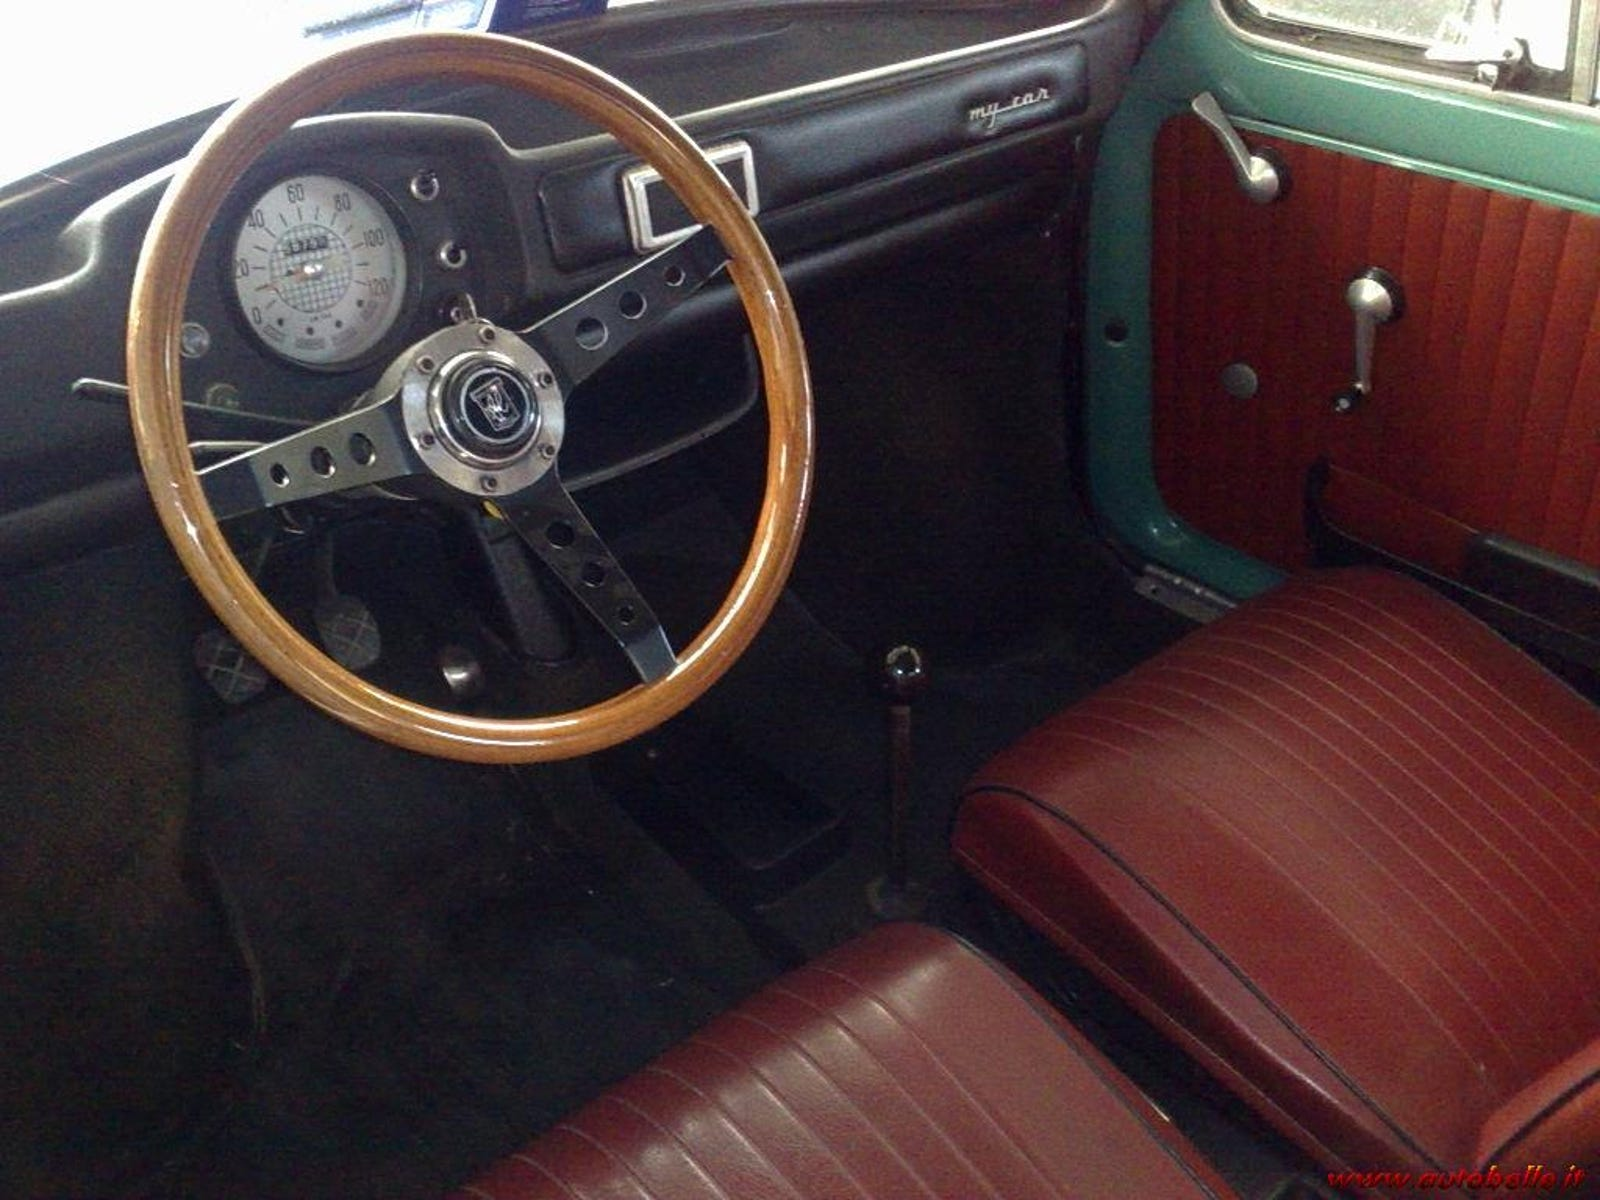 The very inviting wooden steering wheel of the 'My Car'. Note the redesigned and re-shaped padded dash and instrument cluster.